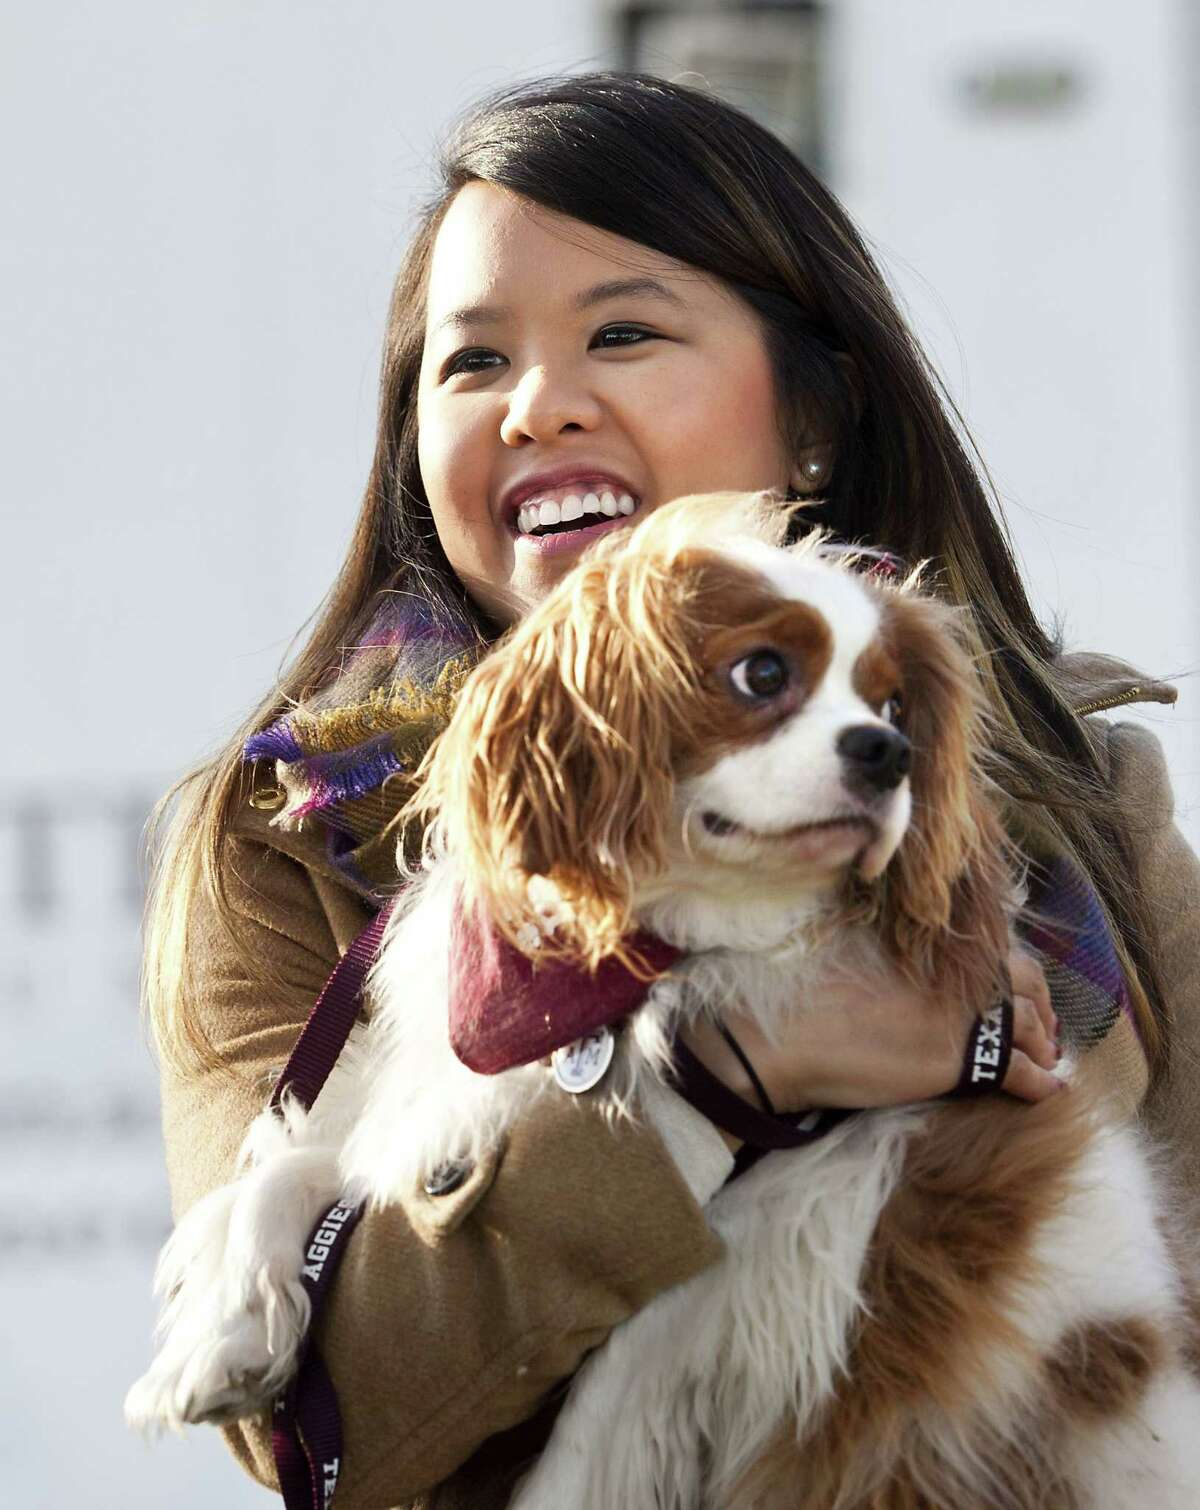 Nina Pham holds up her dog Bentley, at Hensley Field in Grand Prairie, Texas, Nov. 1, 2014. Pham, who recovered from Ebola, and the King Charles Spaniel were reunited privately on Saturday in a vacant residence where officers once lived at a decommissioned naval air base, where he was quarantined for 21 days.